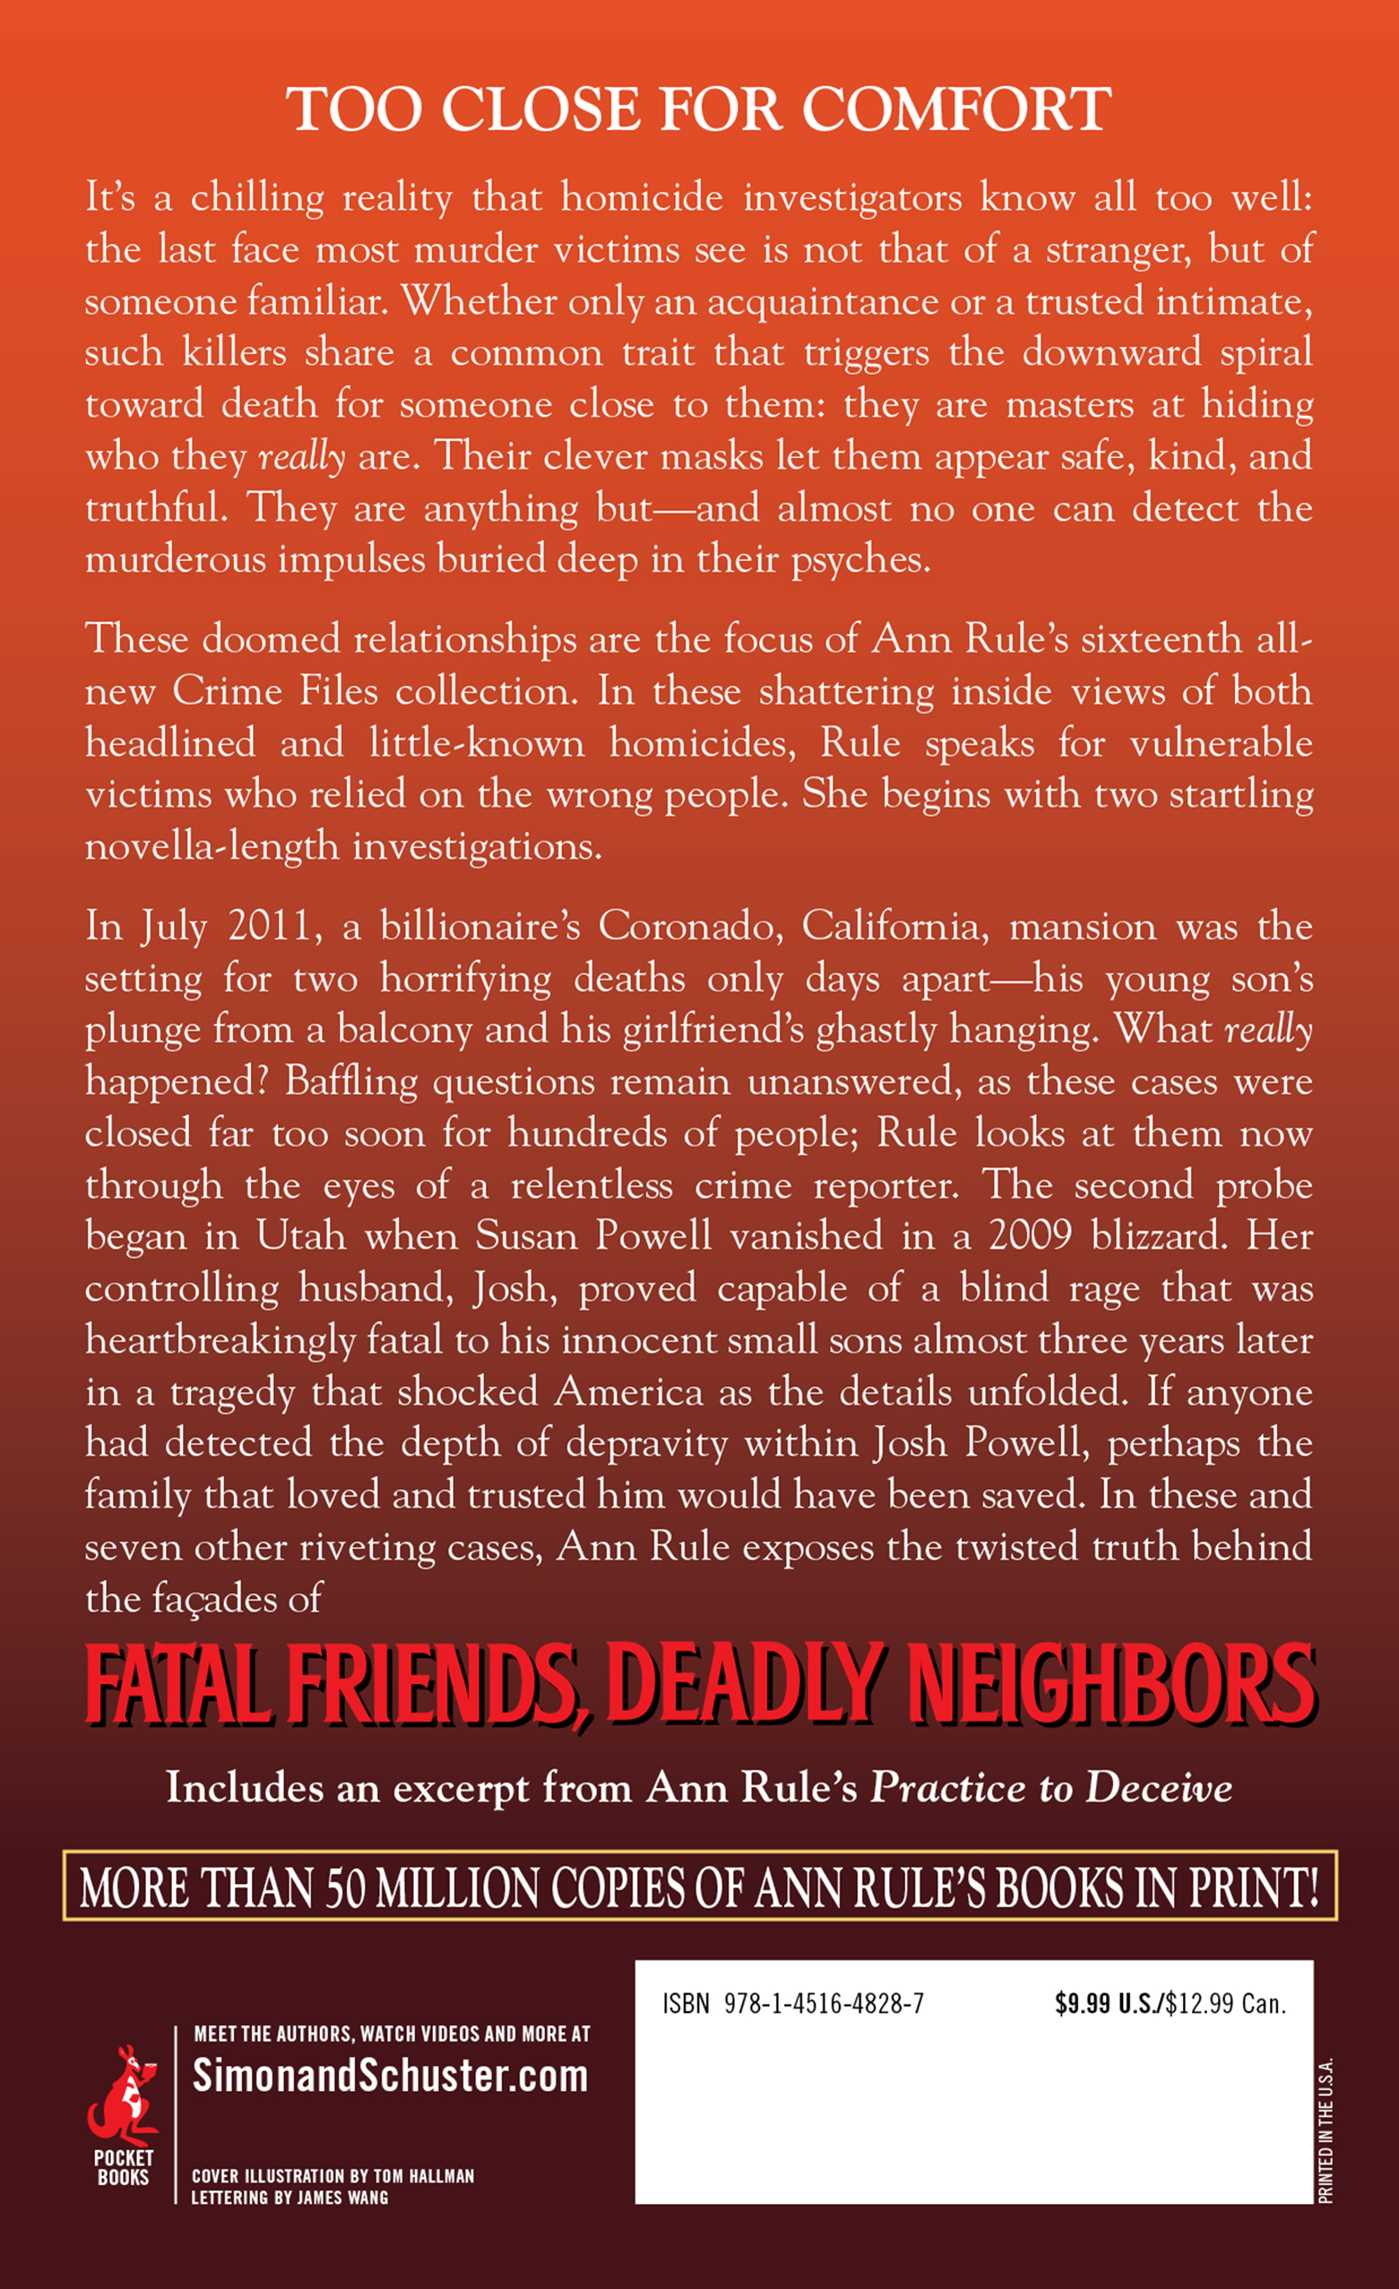 Fatal-friends-deadly-neighbors-9781451648287_hr-back